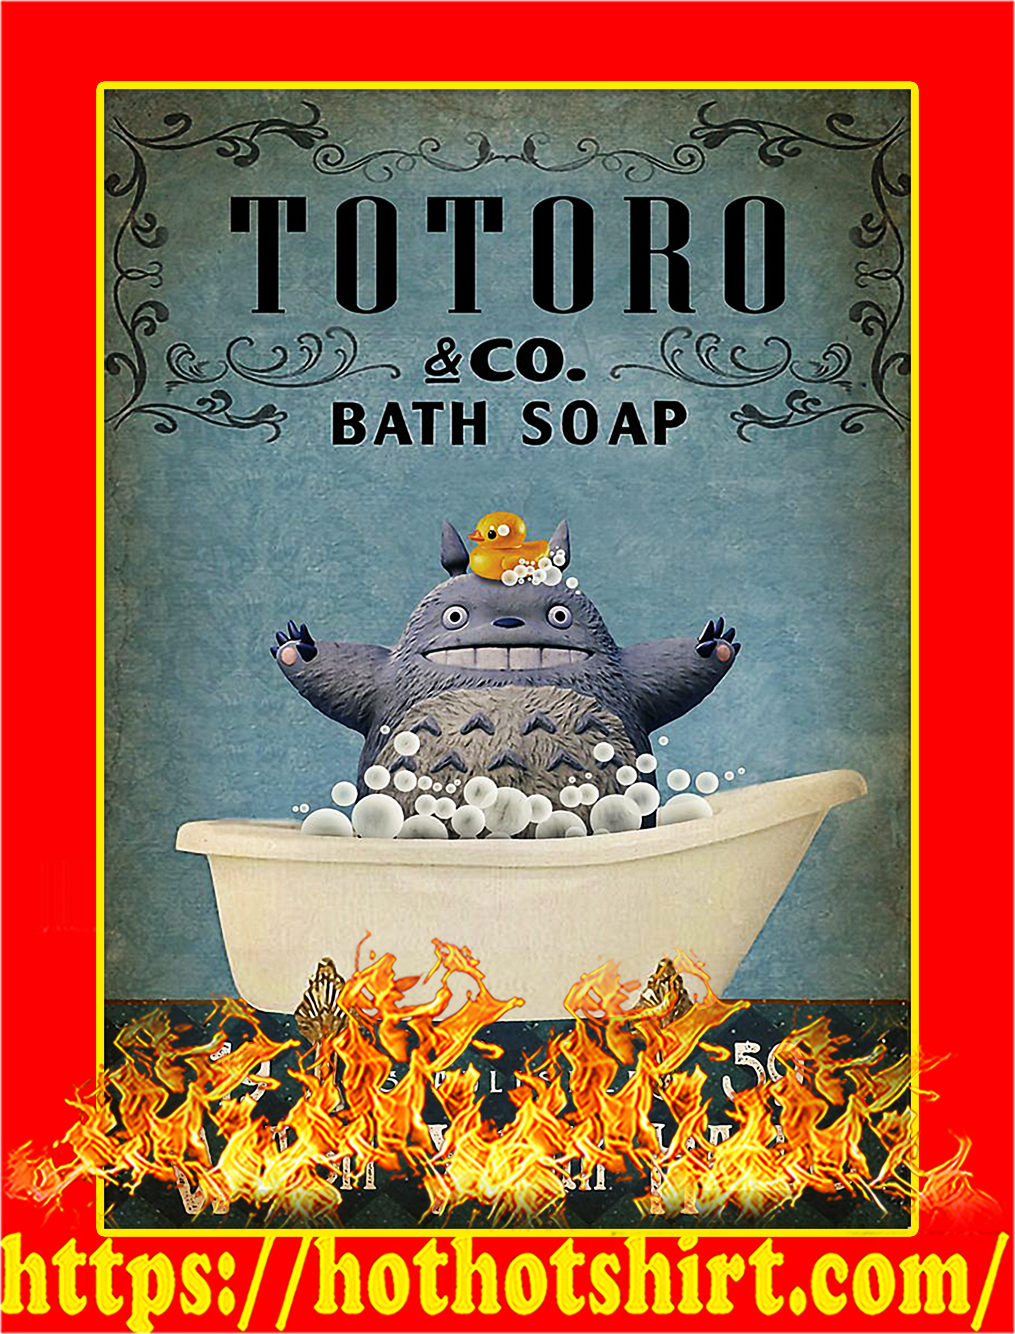 Totoro co bath soap wash your hands poster - A4